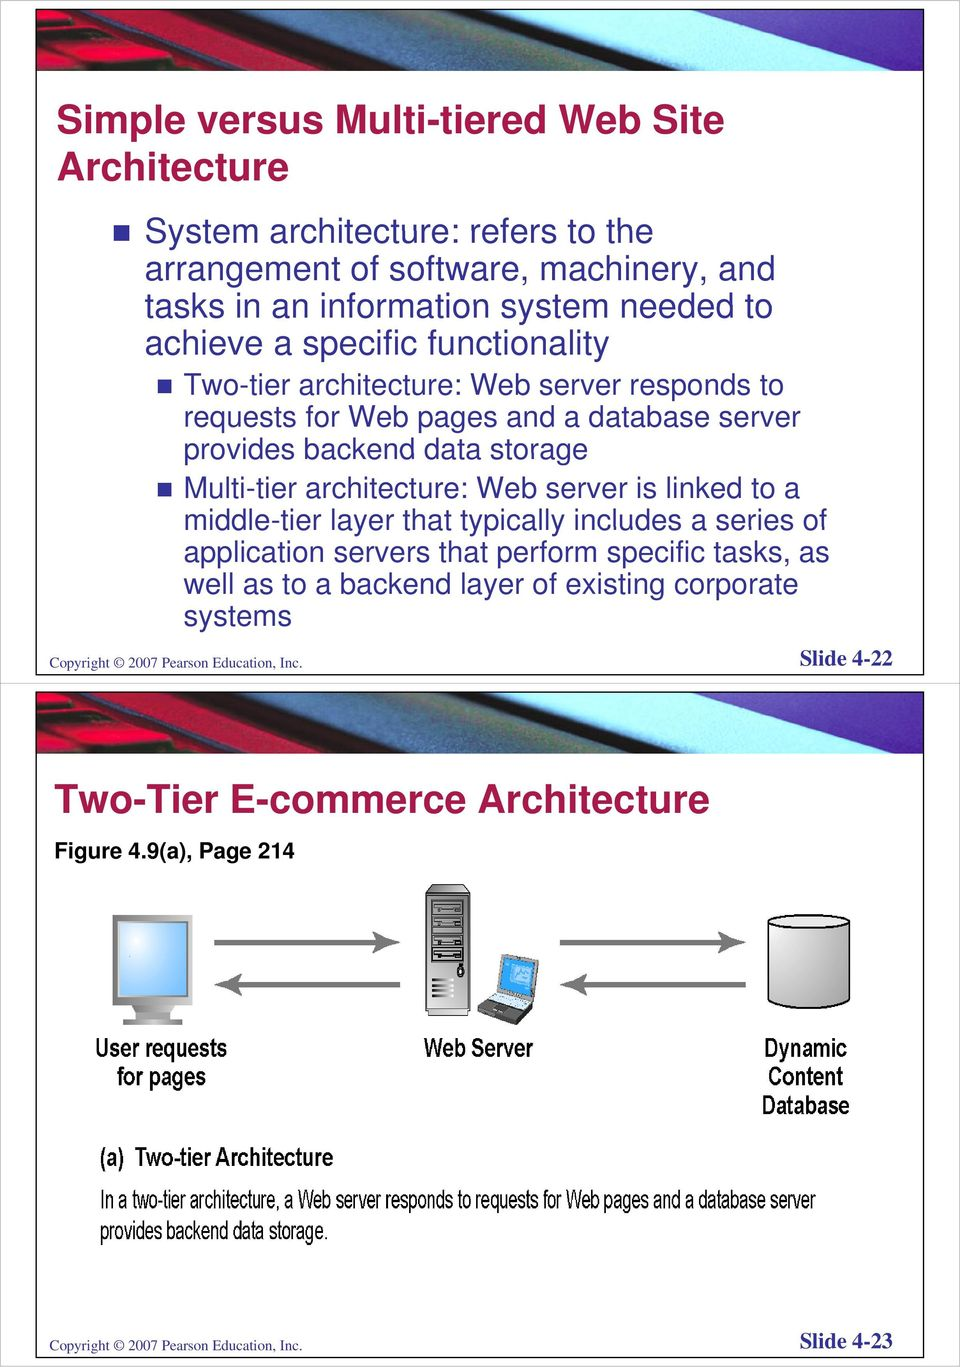 architecture: Web server is linked to a middle-tier layer that typically includes a series of application servers that perform specific tasks, as well as to a backend layer